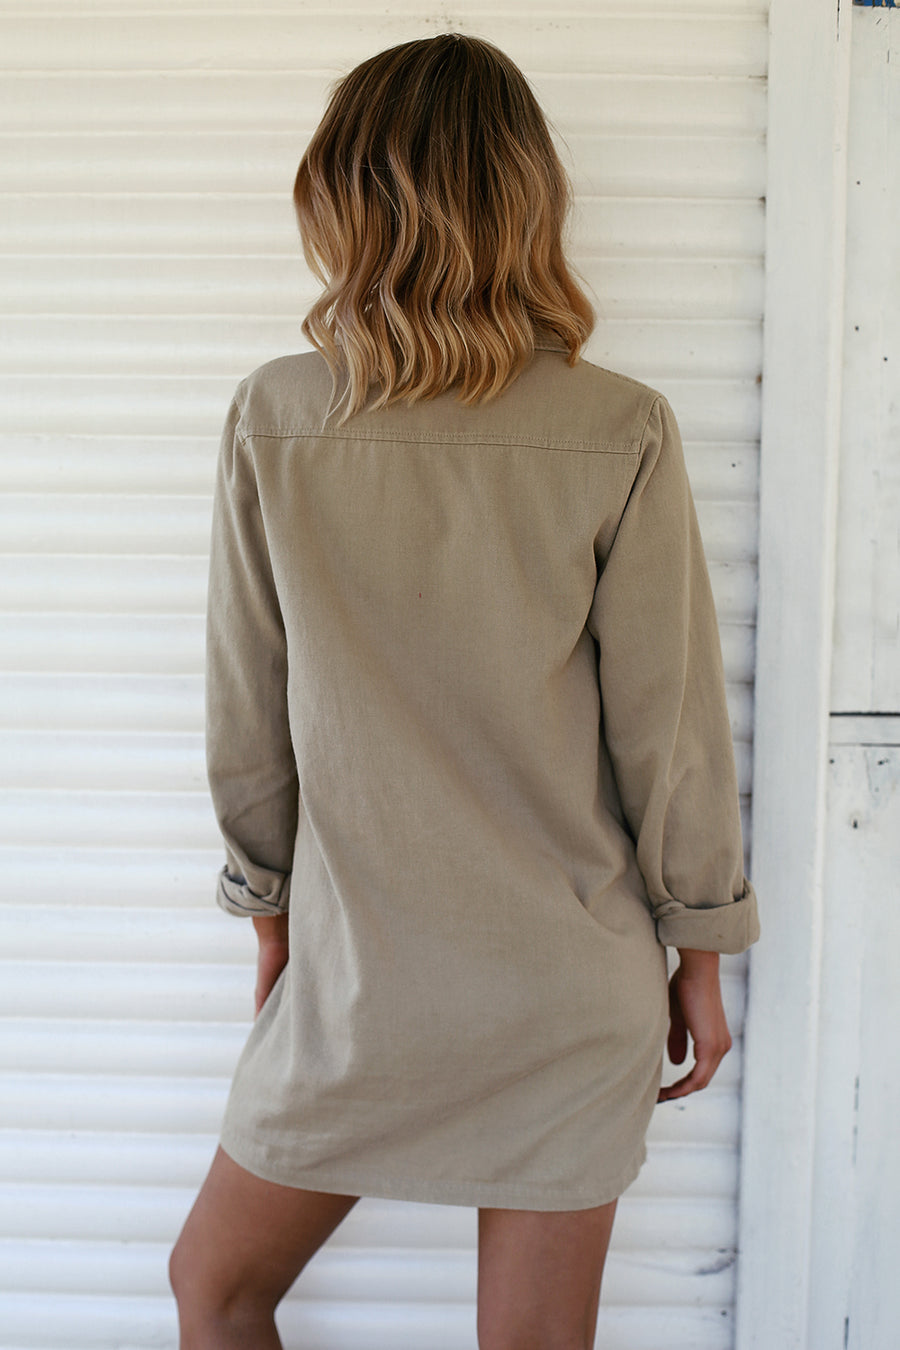 Soldier Shirt Dress in Beige